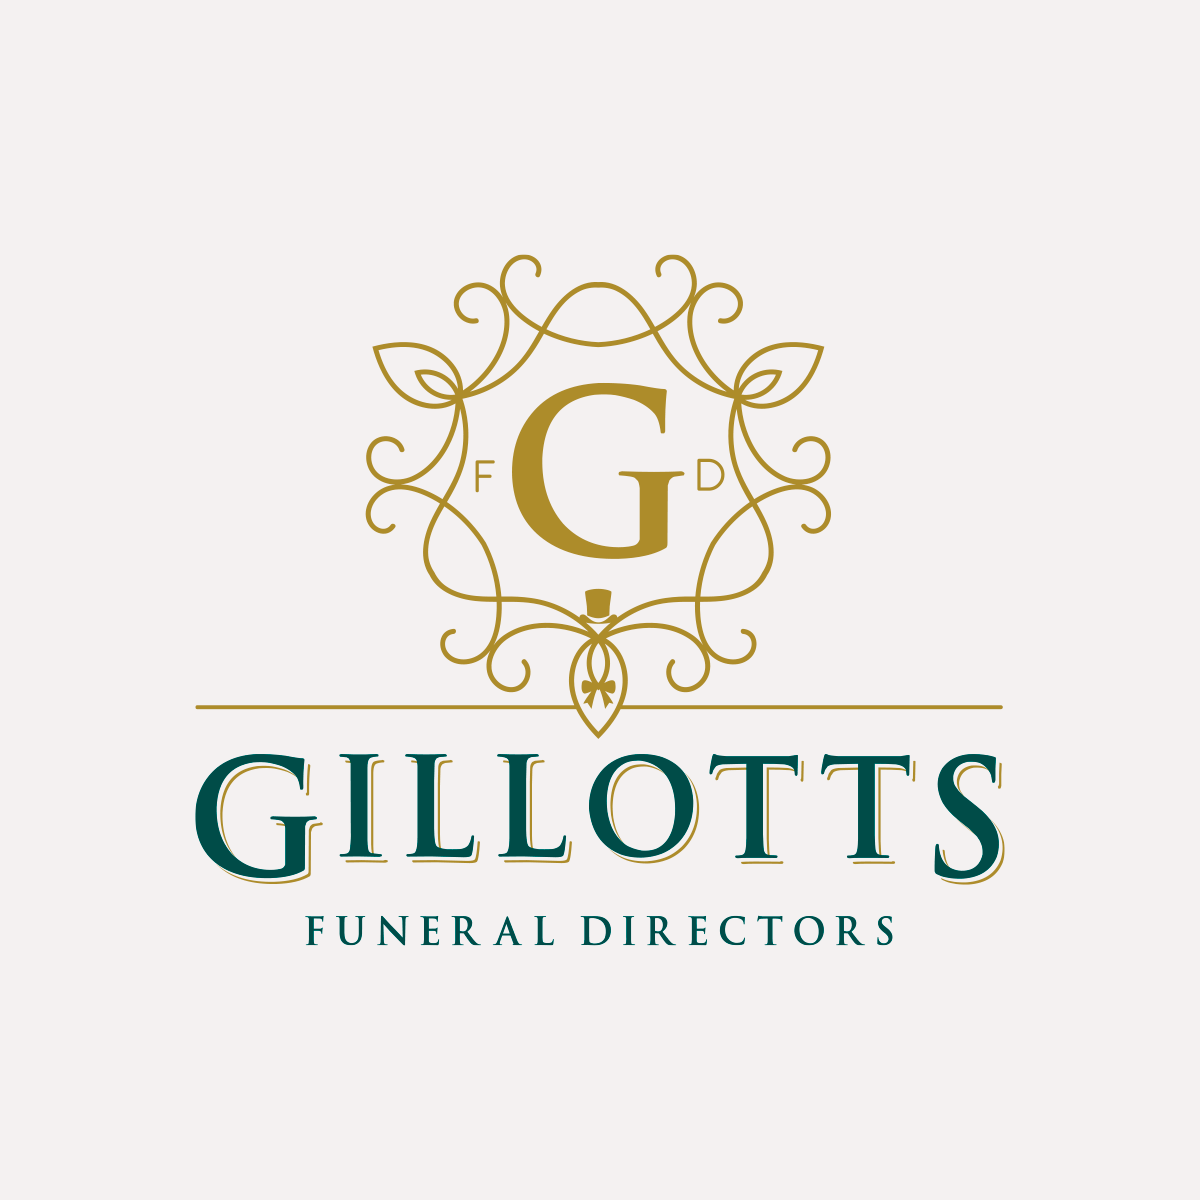 Identity for Gillotts Funeral Directors, light grey background